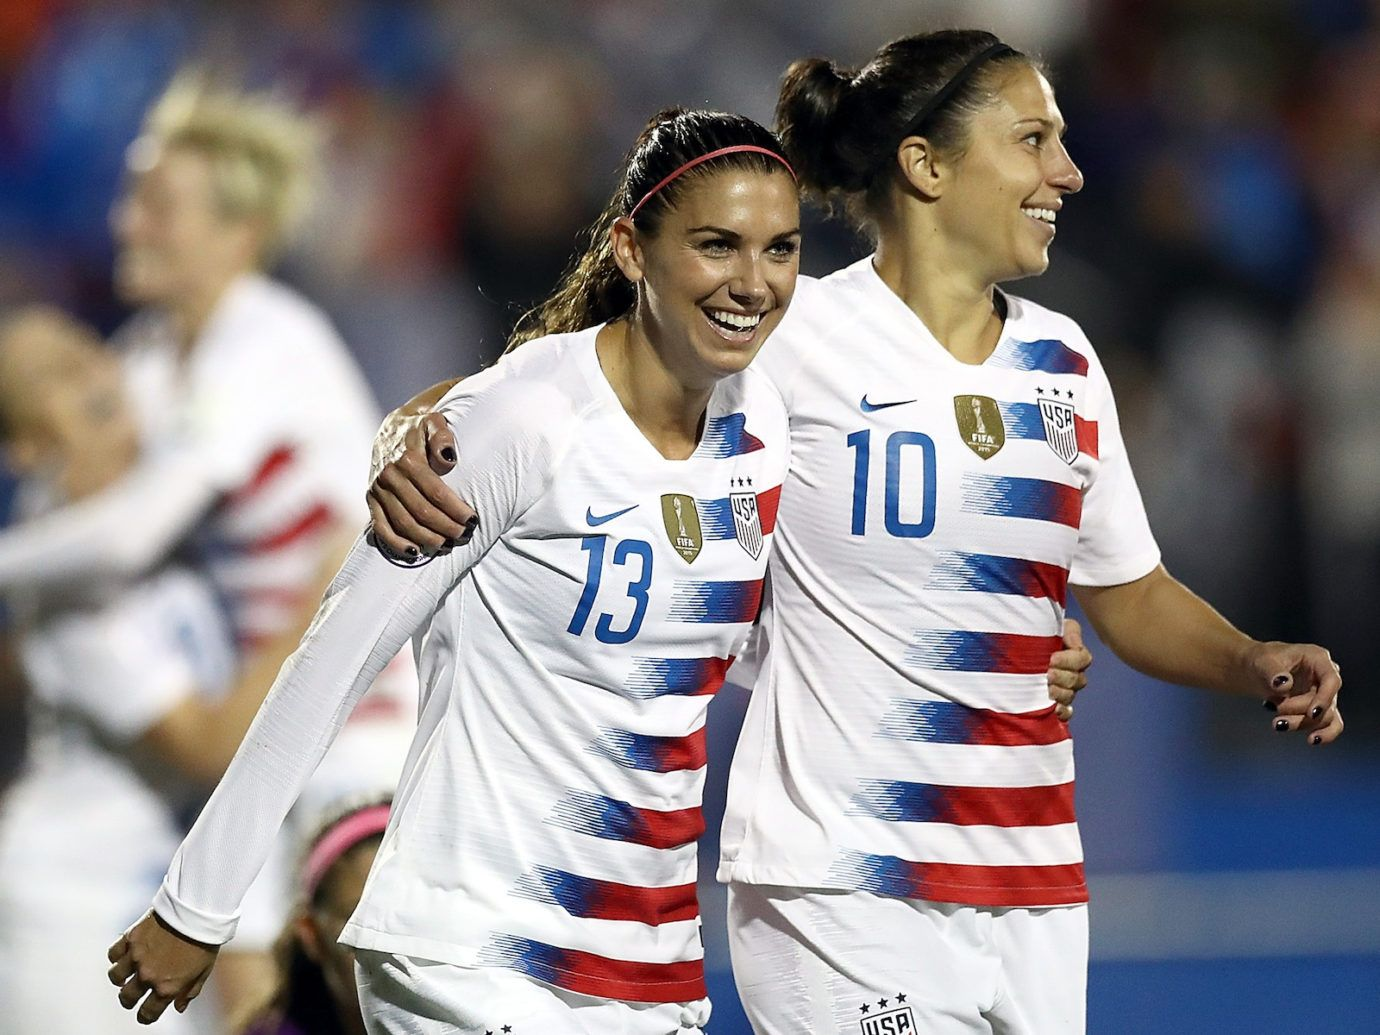 Us Women S Soccer Team Player Puts Ruth Bader Ginsburg S Name On Her Jersey Women S Soccer Team Carli Lloyd Uswnt